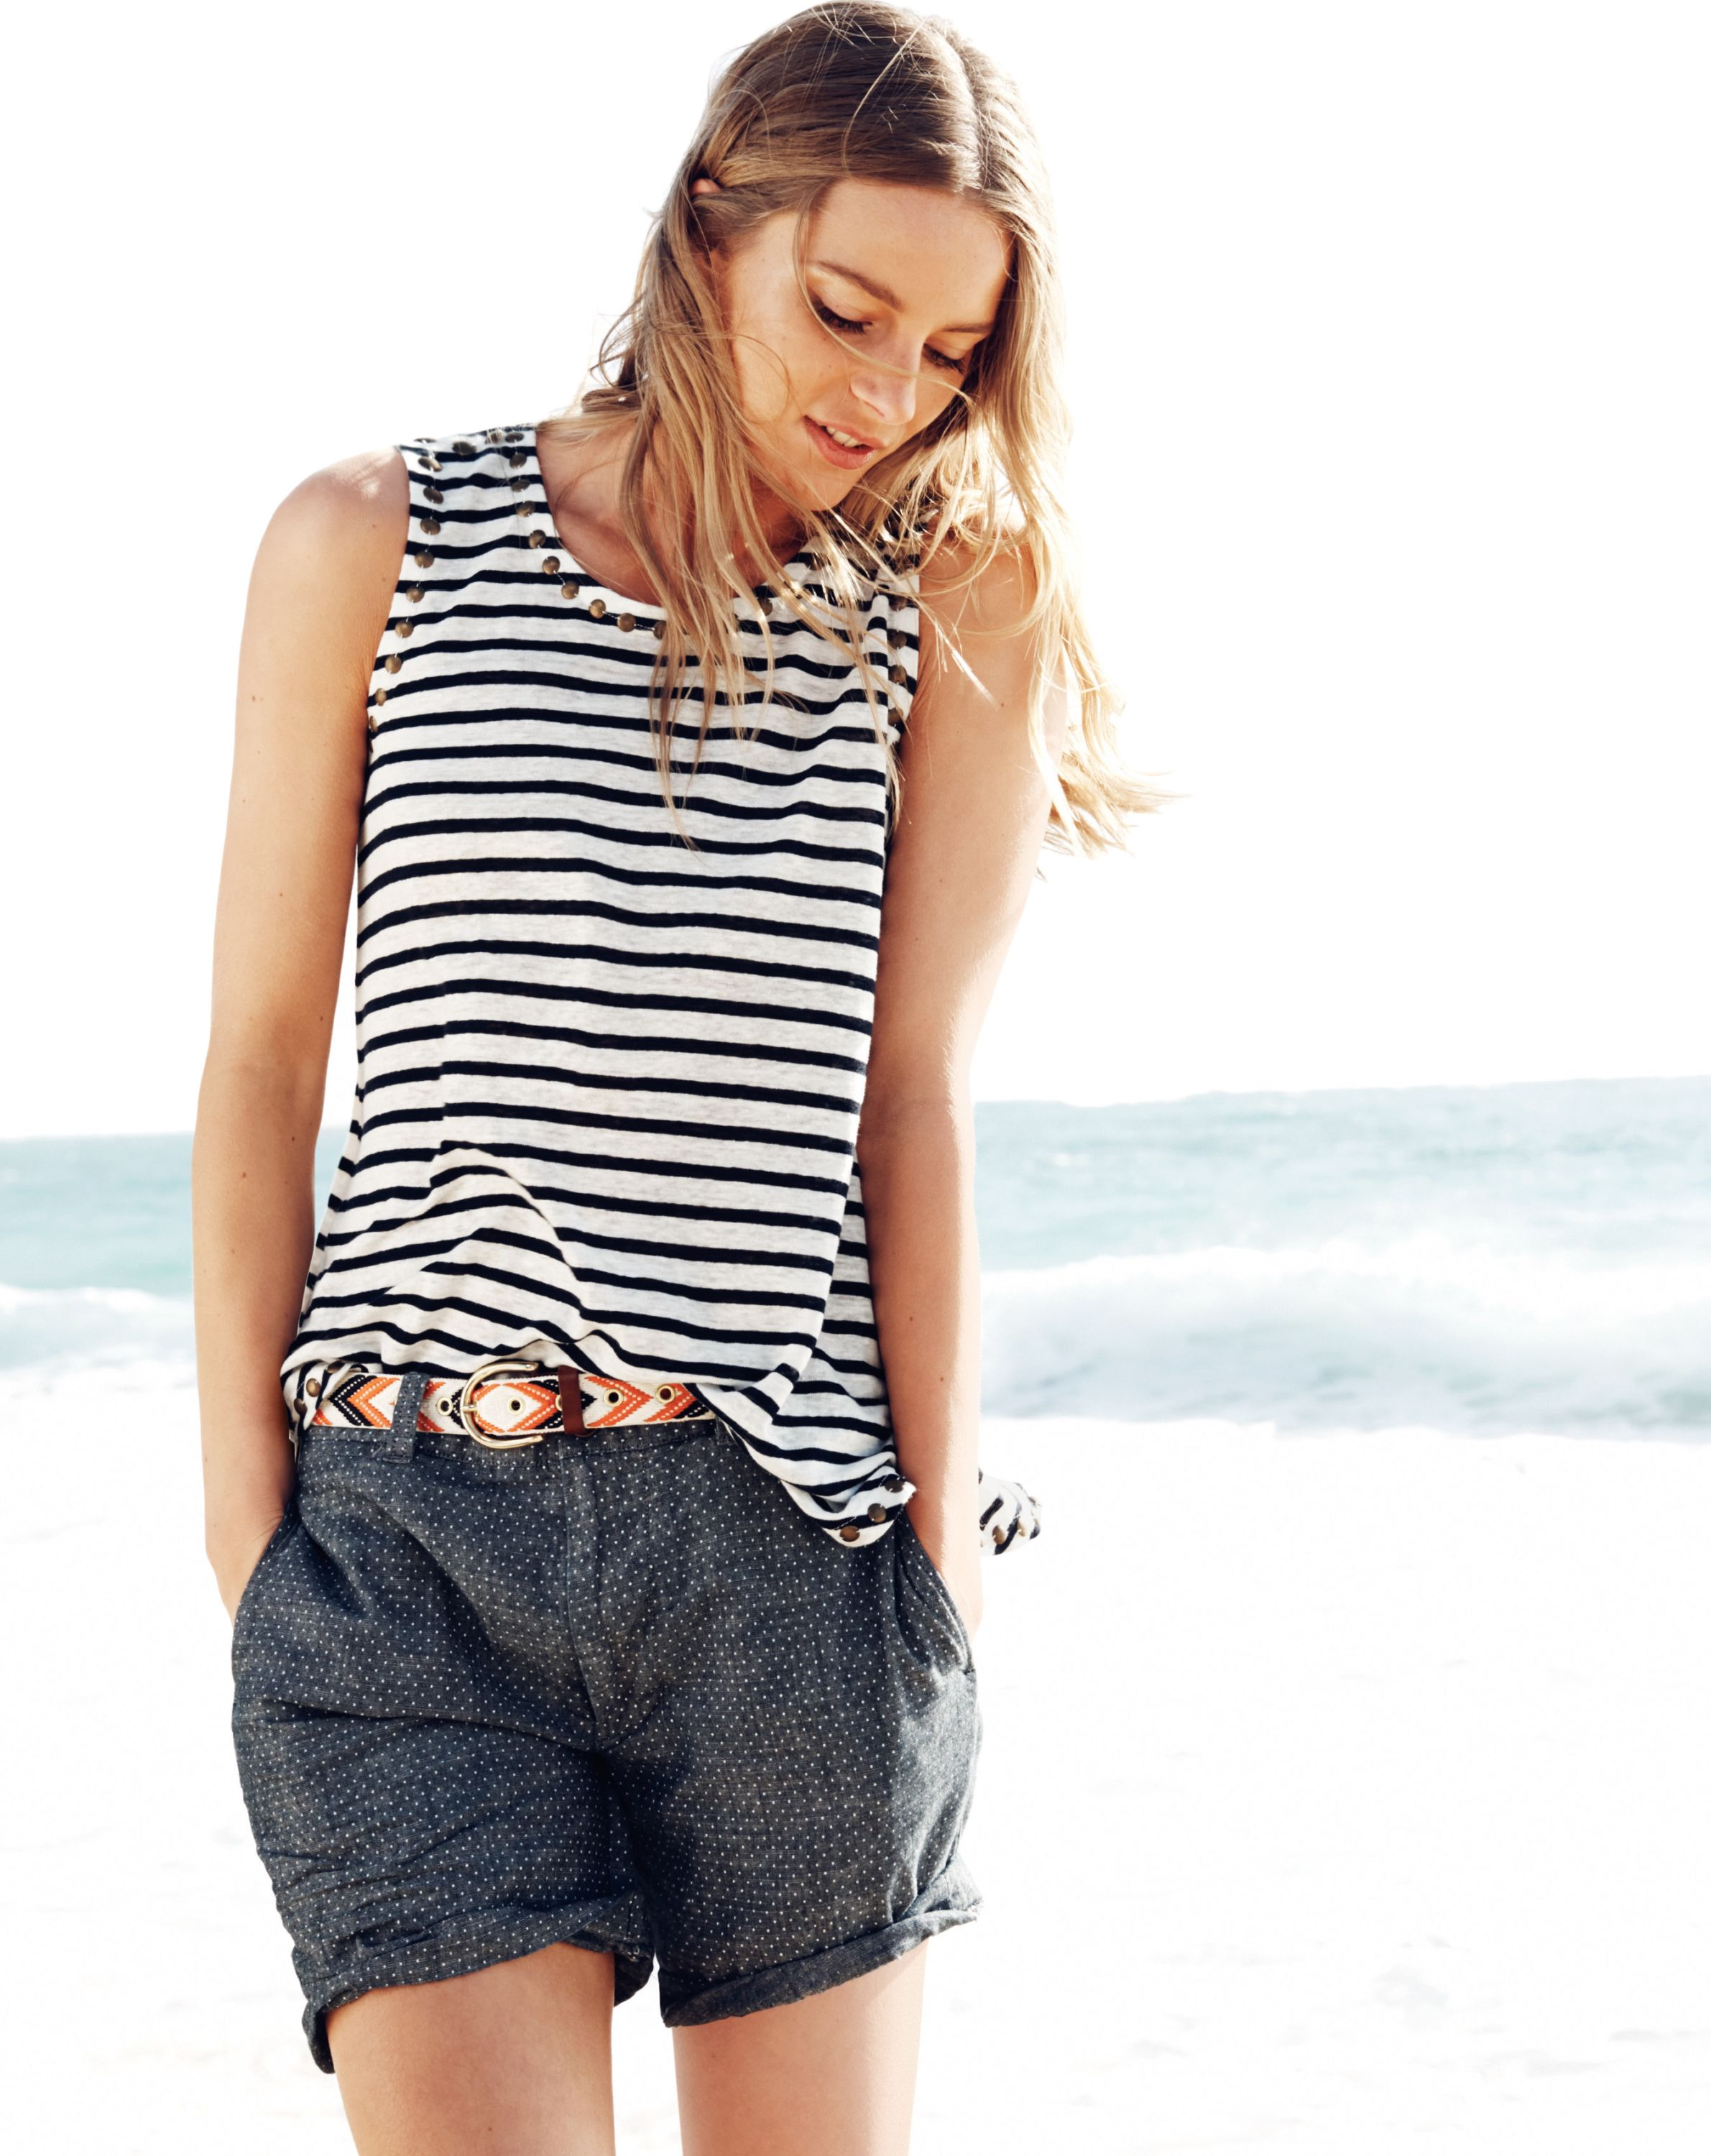 J.Crew women's linen studded tank and chevron belt. To preorder call 800 261 7422 or email erica@jcrew.com.